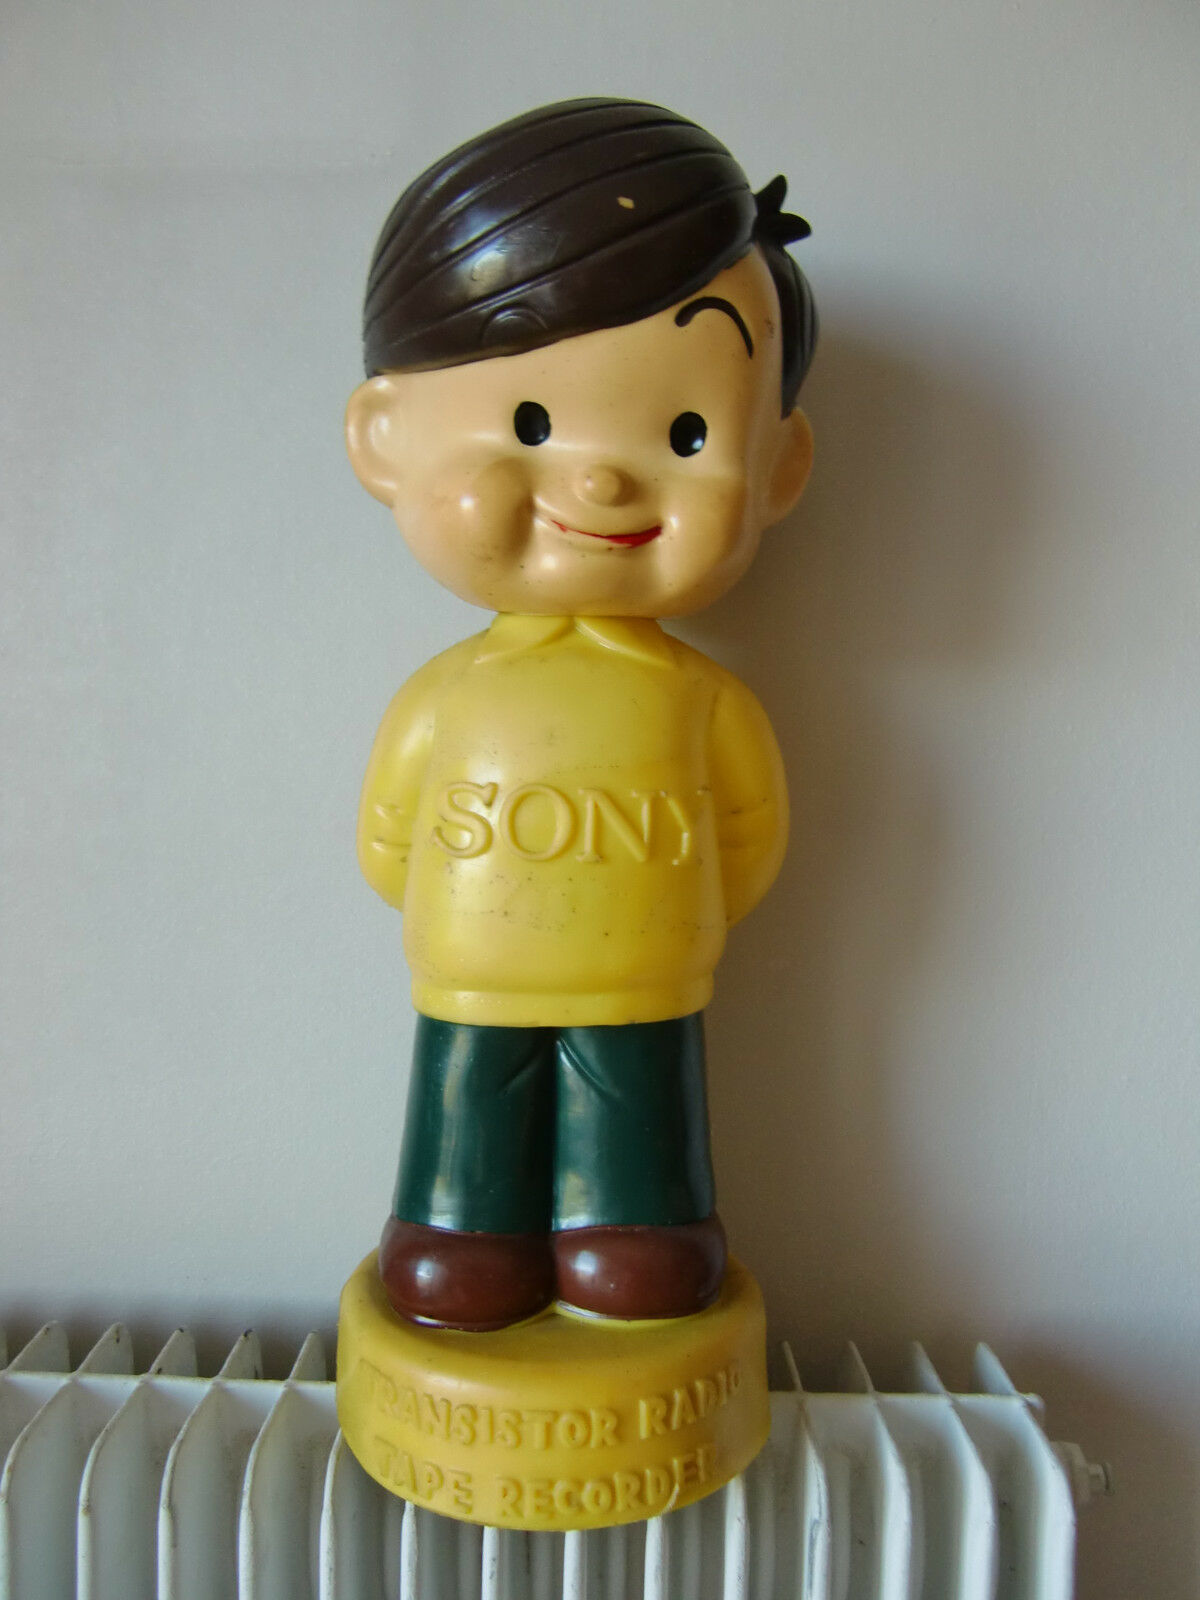 SONY ATCHAN CARTOON BOY store display for transistor radios recorders